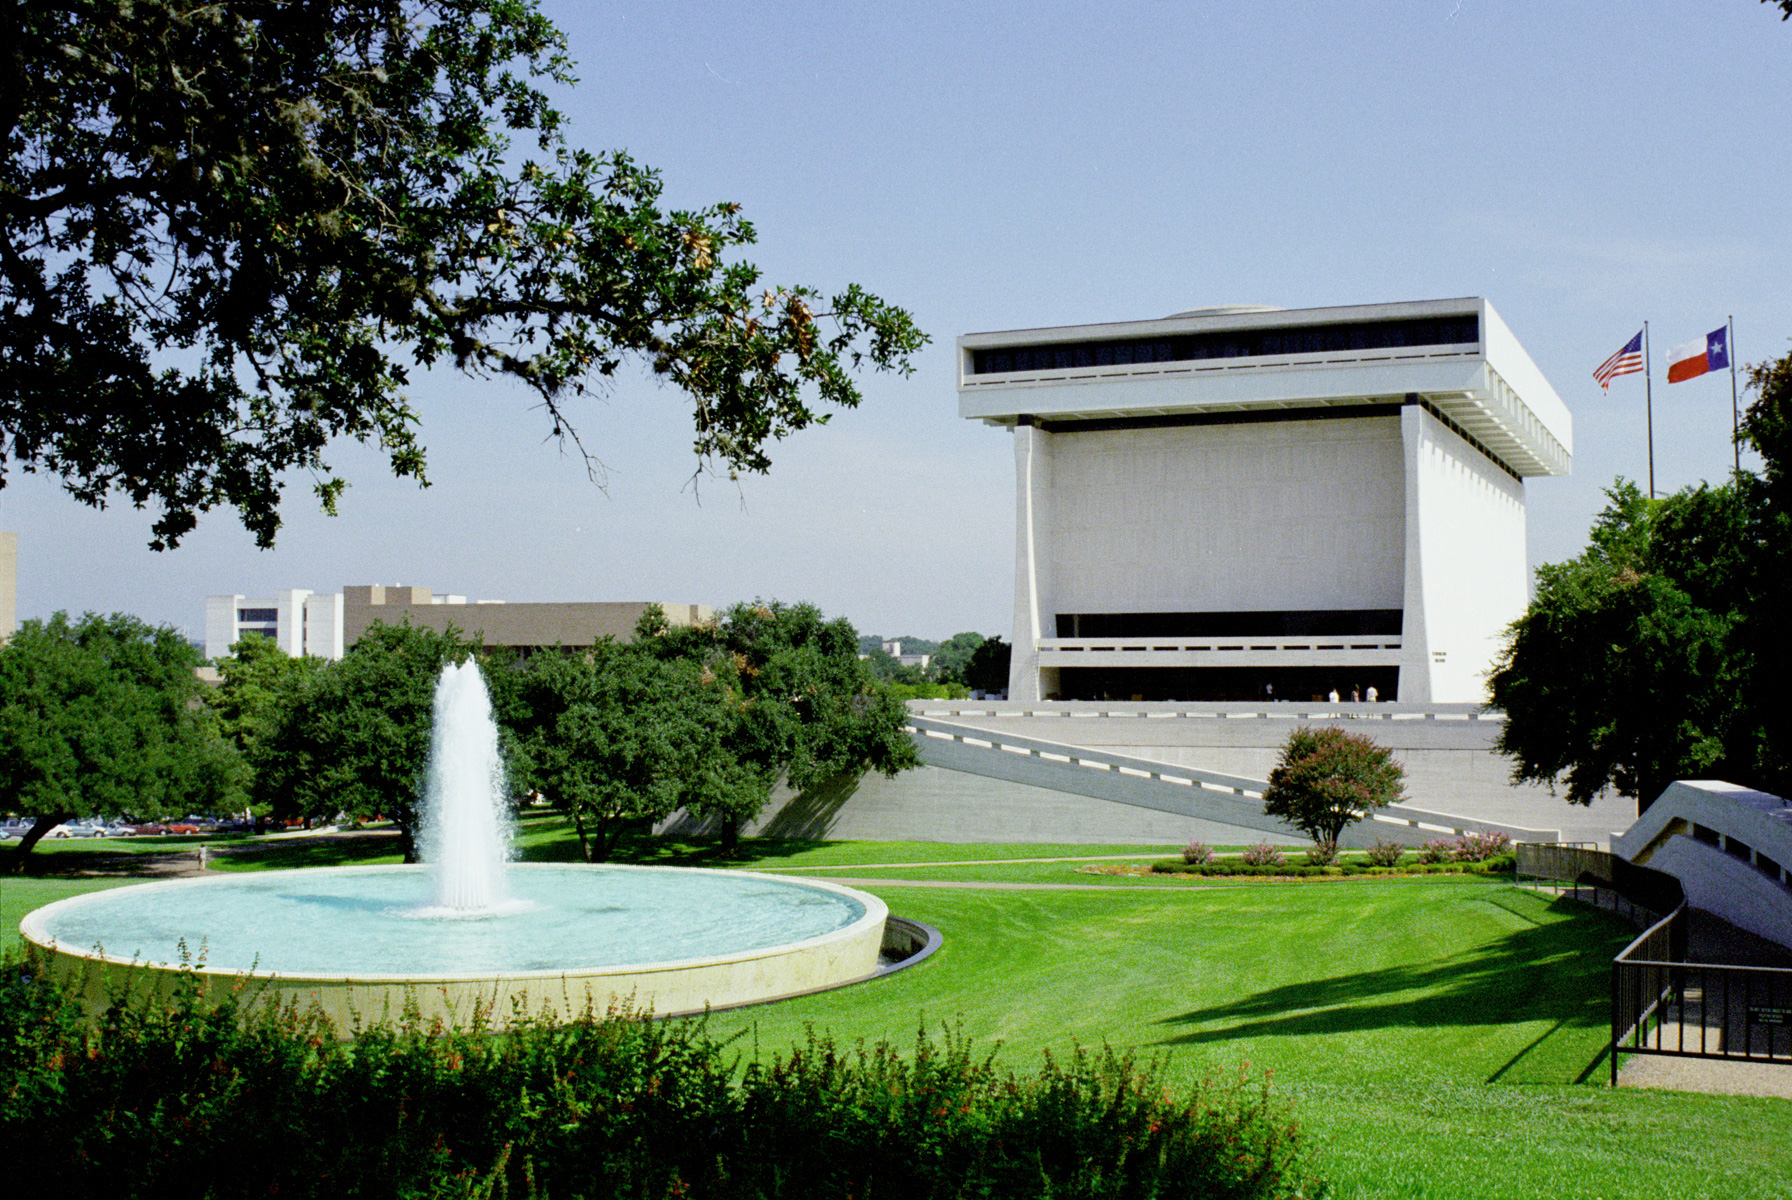 LBJ Library and Museum. Photo Courtesy of Austin Convention and Visitors Bureau.